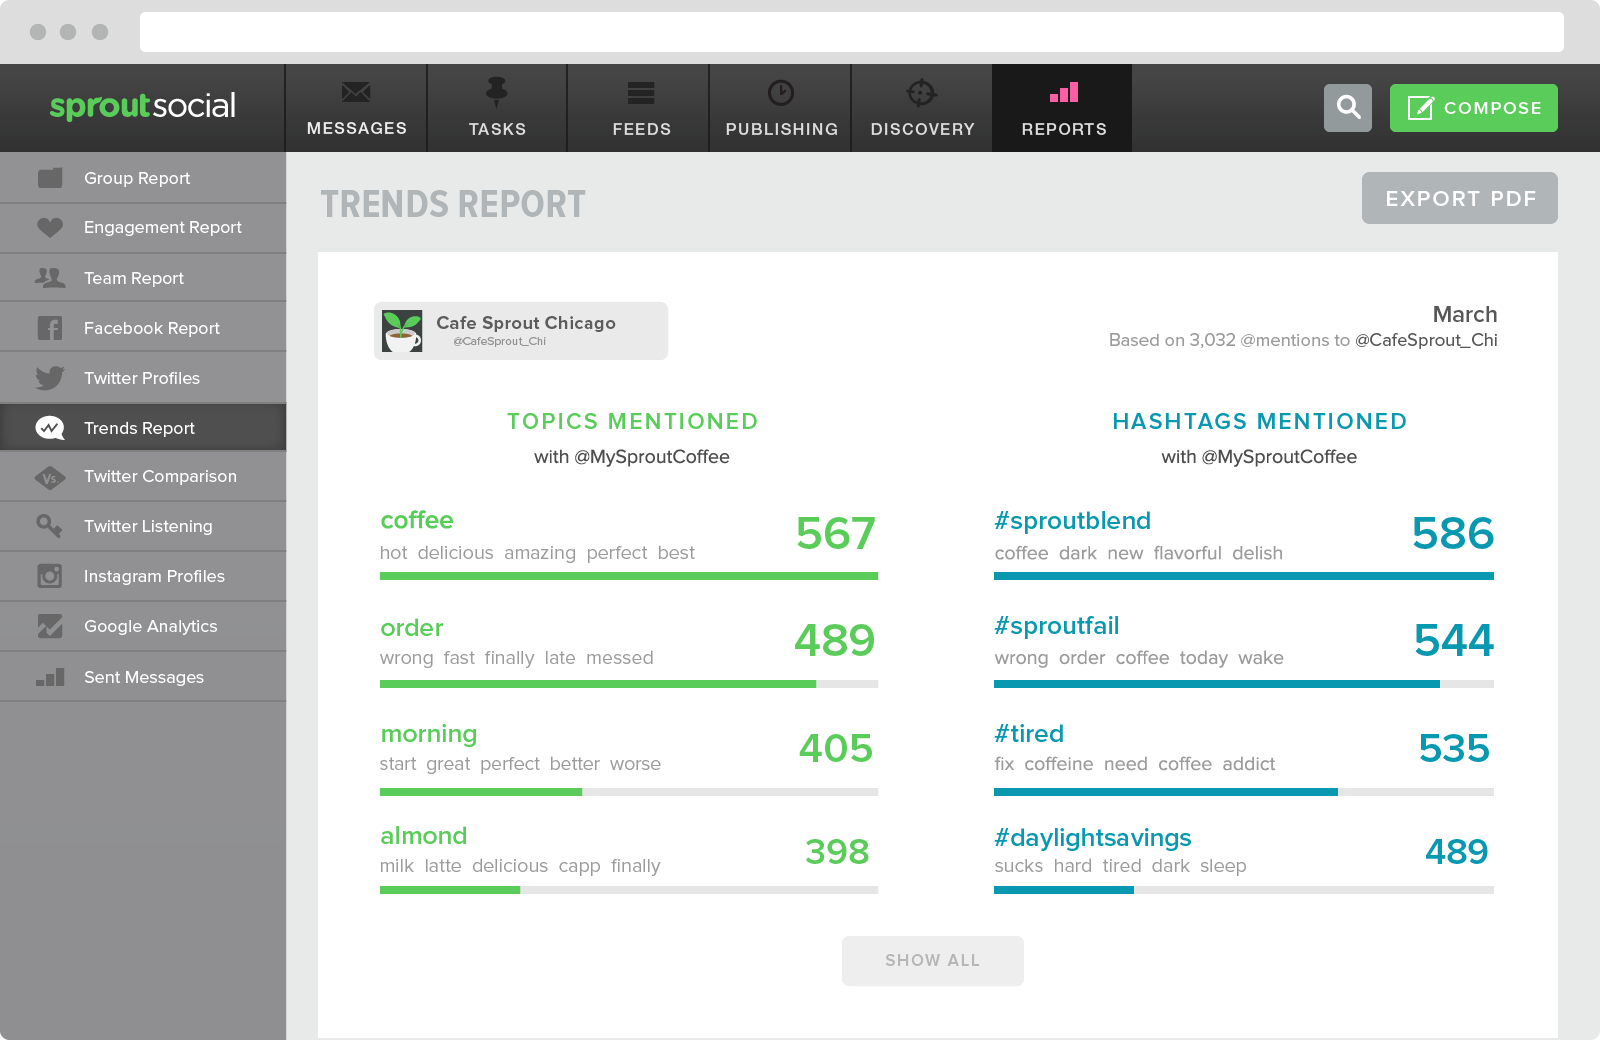 Screenshot of Sprout Social trends report